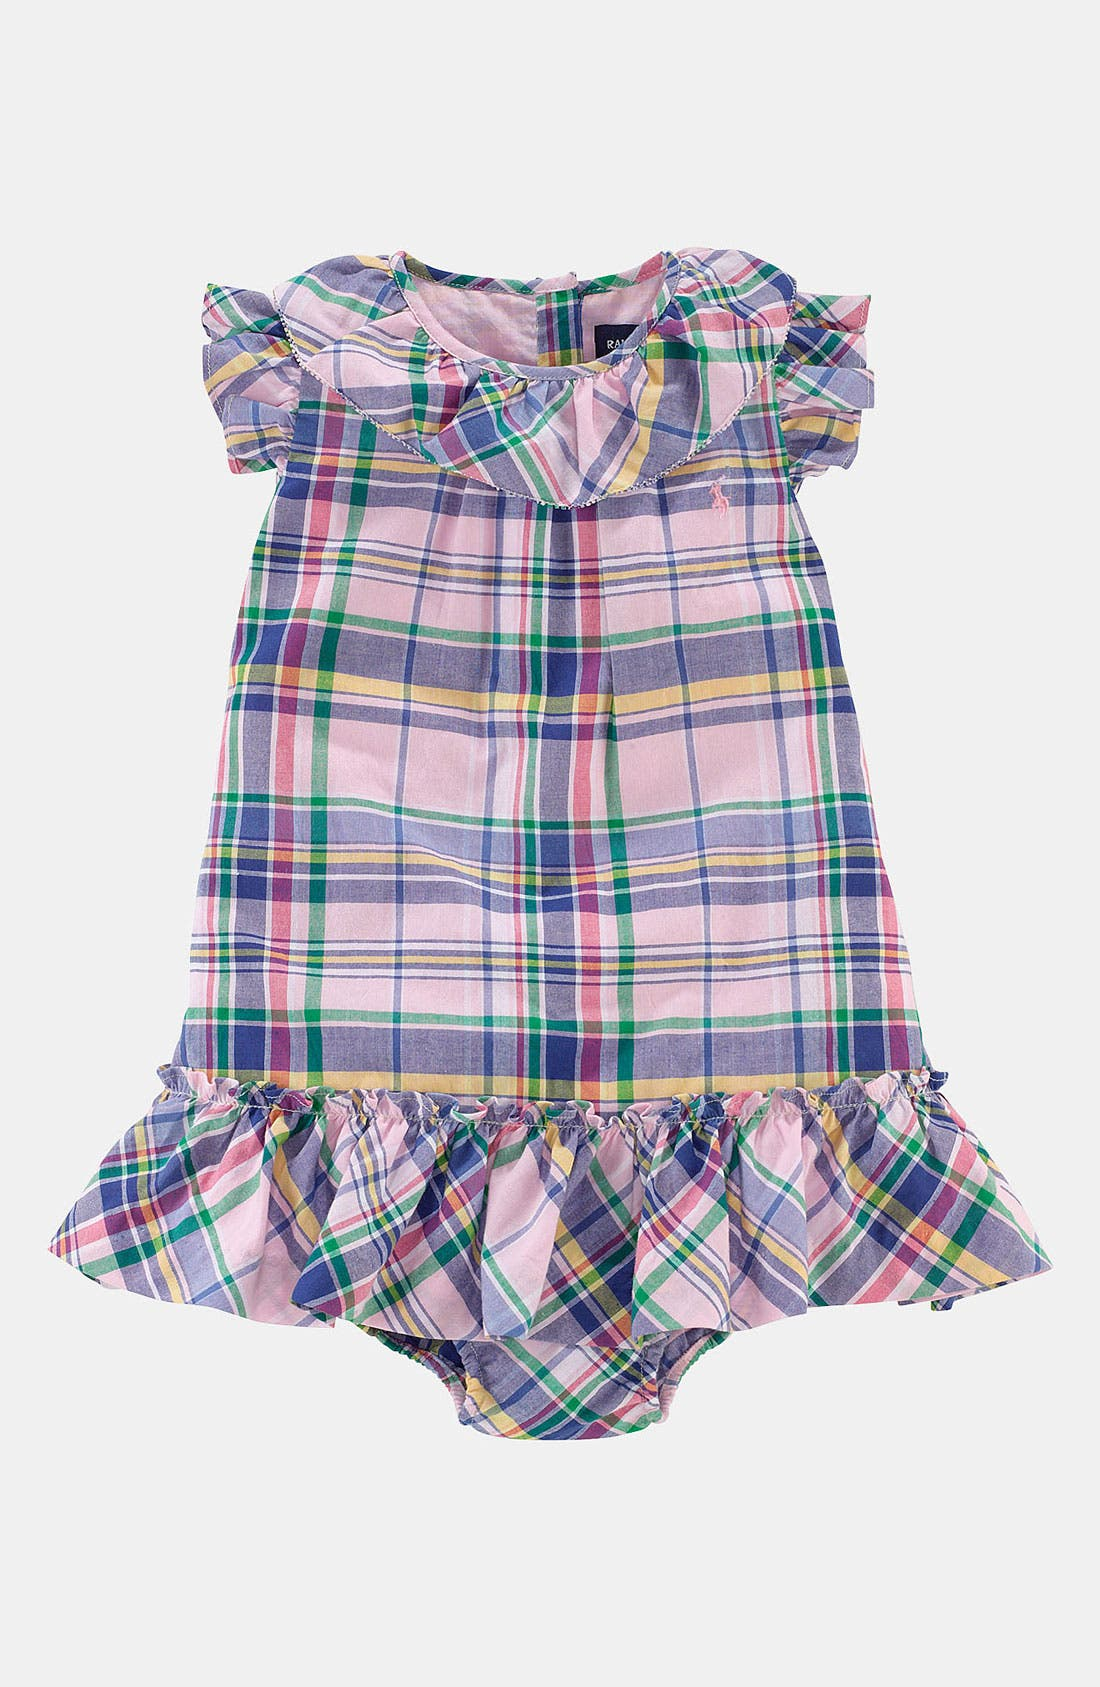 Alternate Image 1 Selected - Ralph Lauren Madras Plaid Dress (Baby)